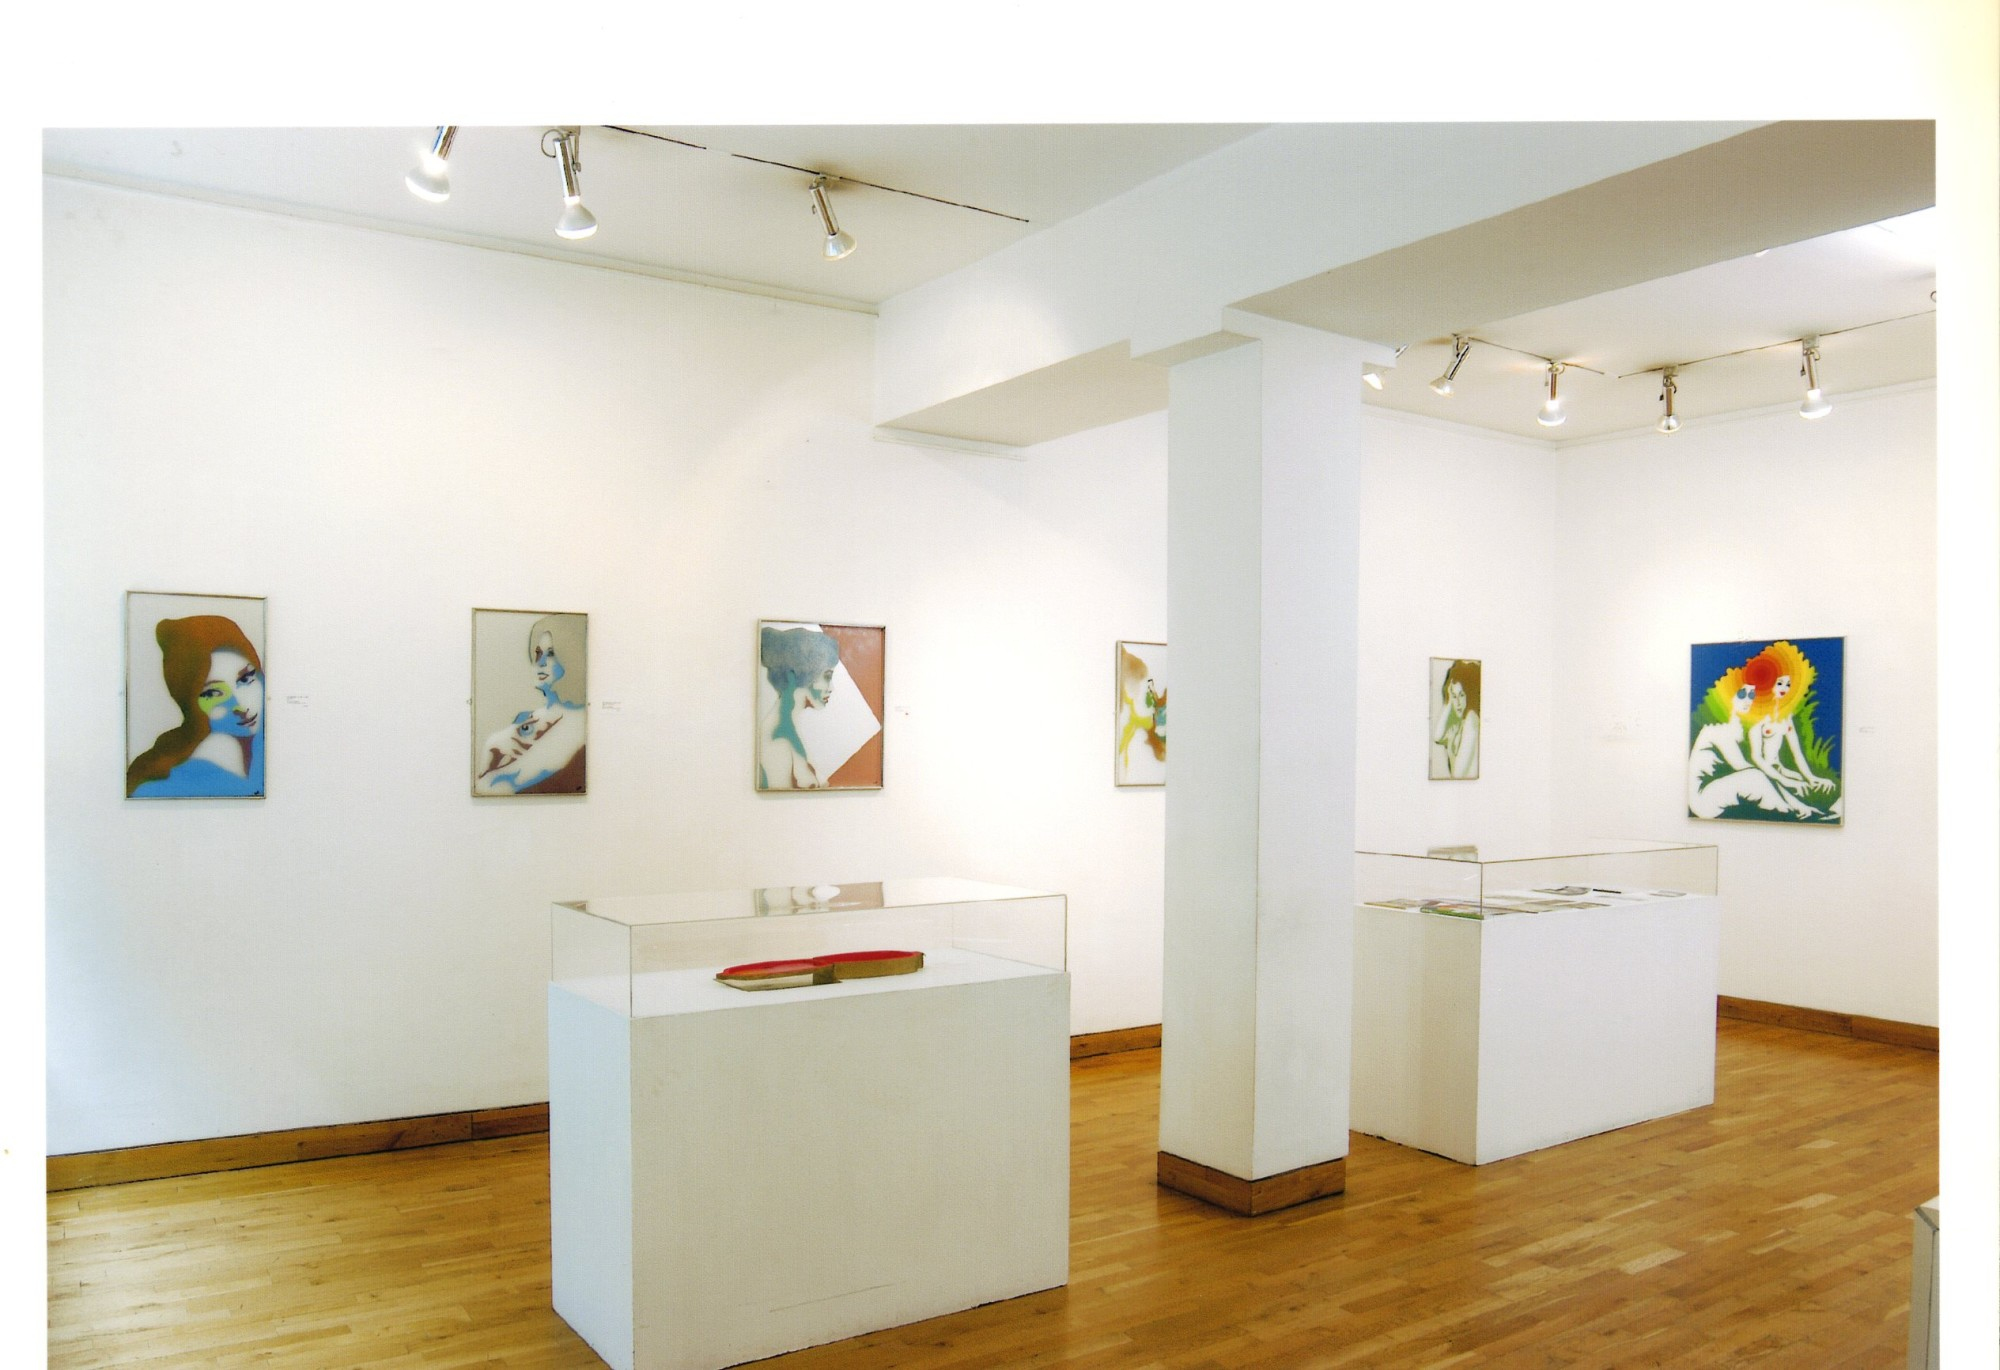 """<span class=""""link fancybox-details-link""""><a href=""""/exhibitions/119/works/image_standalone500/"""">View Detail Page</a></span><p>EVELYNE AXELL   FROM POP ART TO PARADISE   24 MAR - 4 JUL 2005   Installation View</p>"""